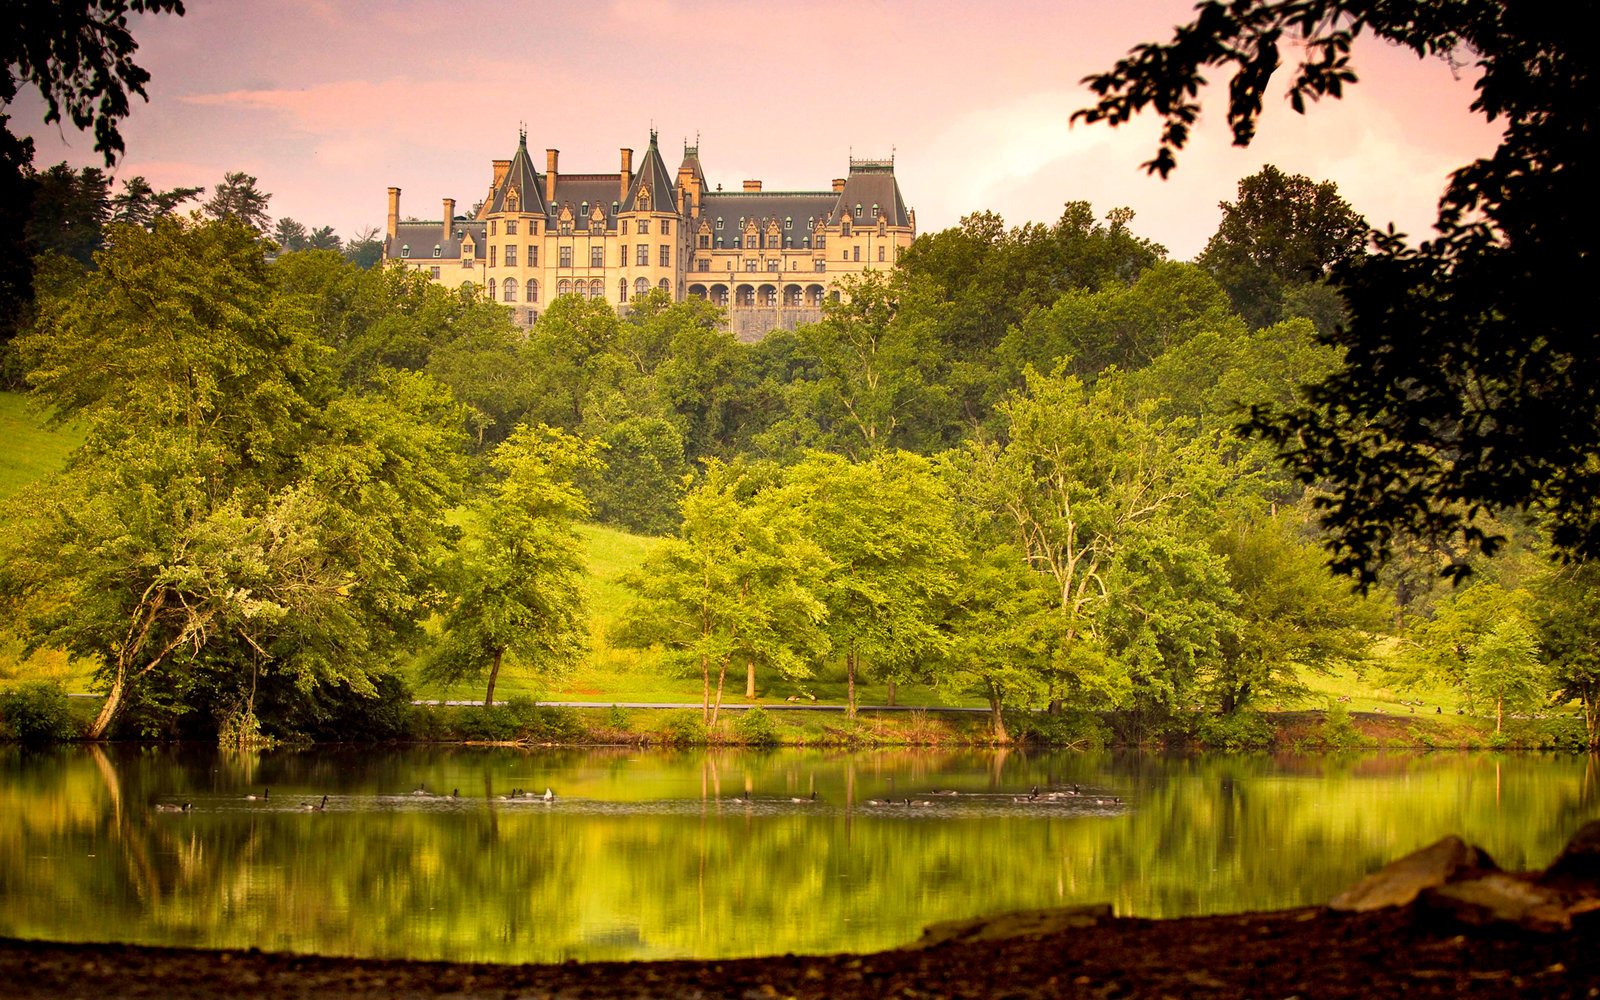 Asheville Nc Colleges And Universities >> The History and Charm of North Carolina's Biltmore Estate | Travel + Leisure